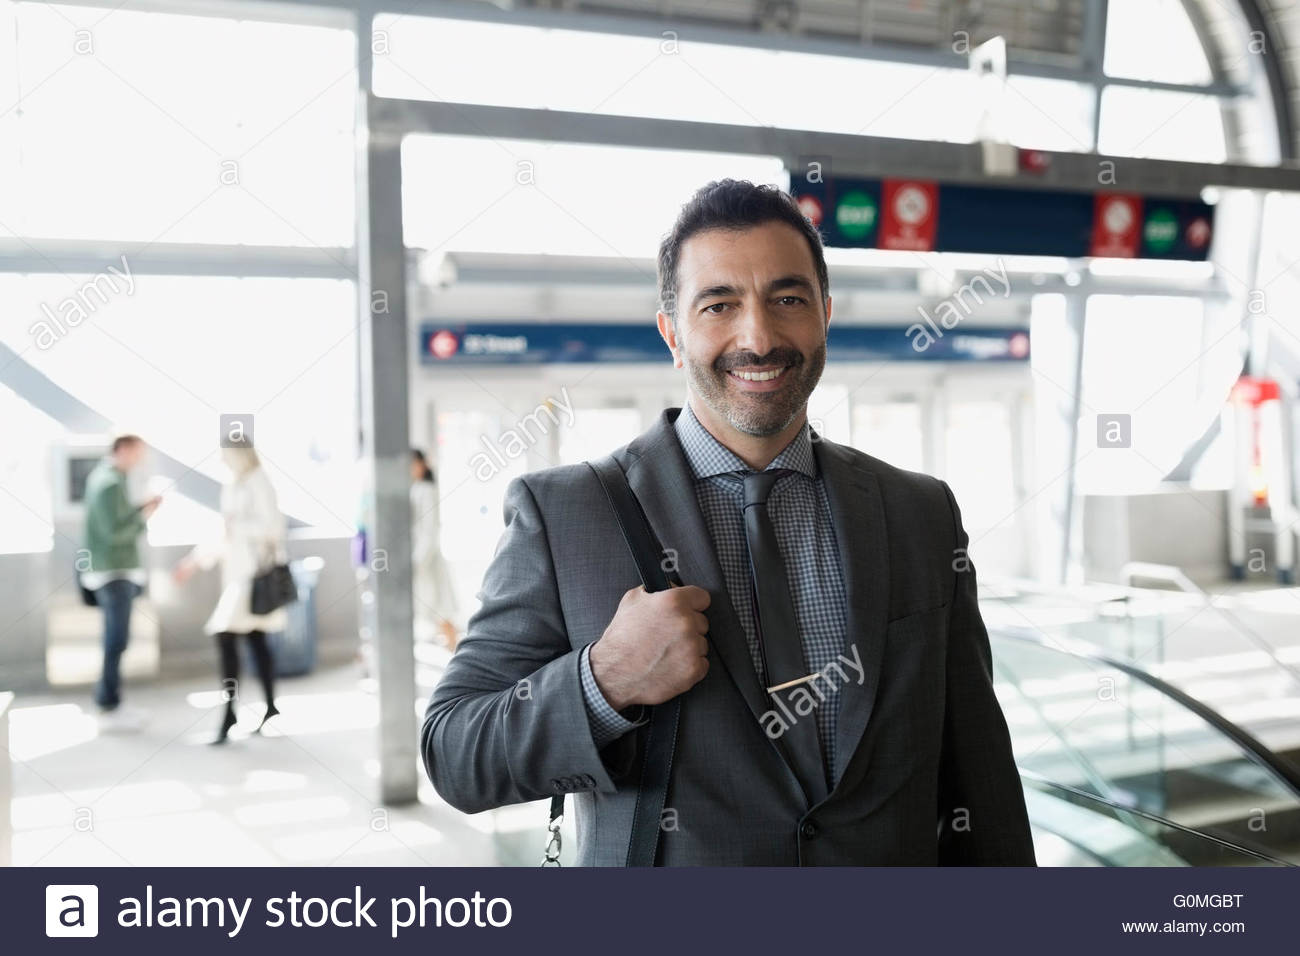 Portrait of smiling businessman at train station Photo Stock